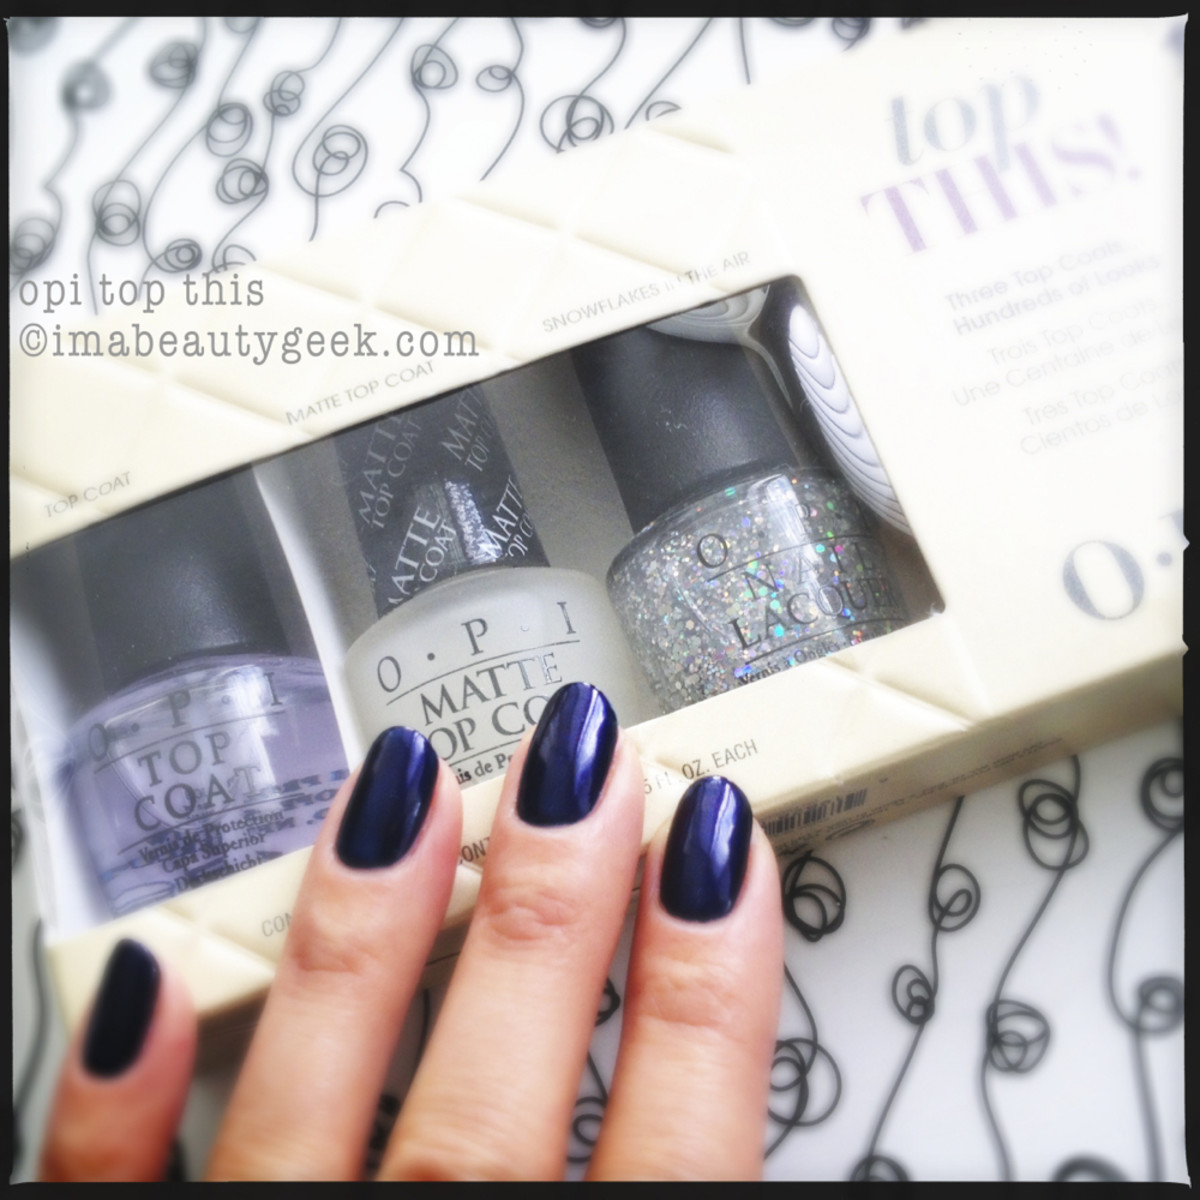 OPI Top This Gift Pack